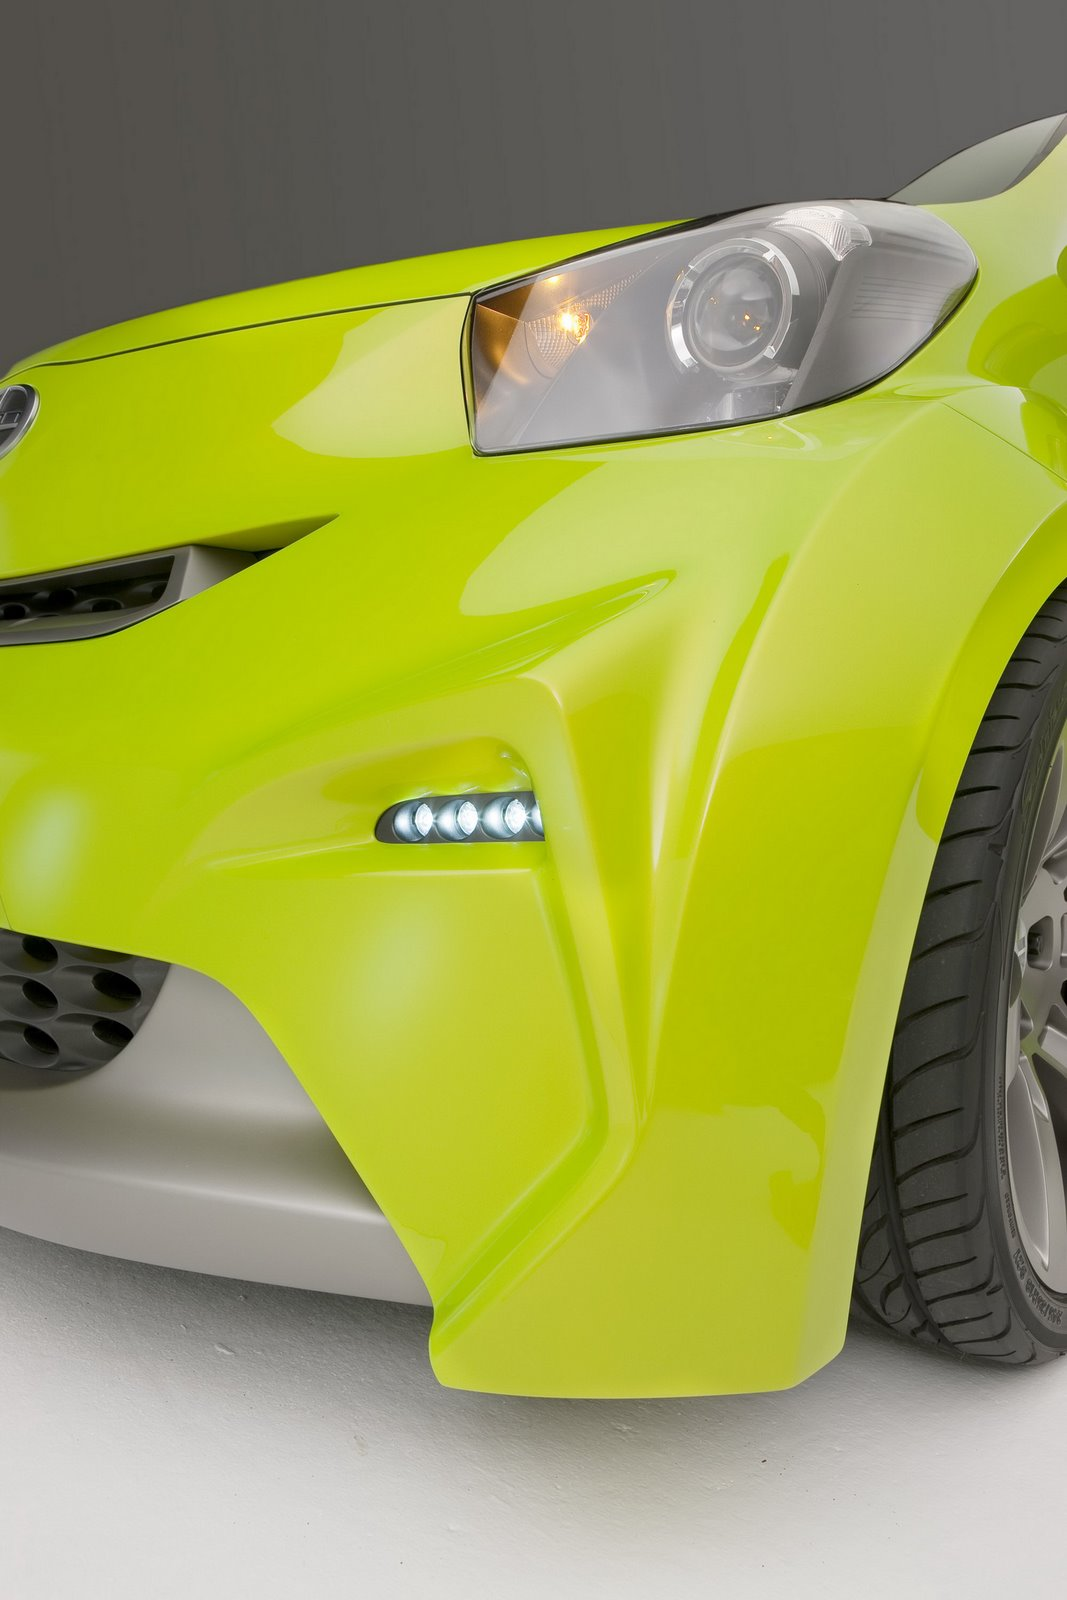 Car Reviews Scion Reveals Iq Concept Pimped By Five Axis In New York Gallery With 70 High